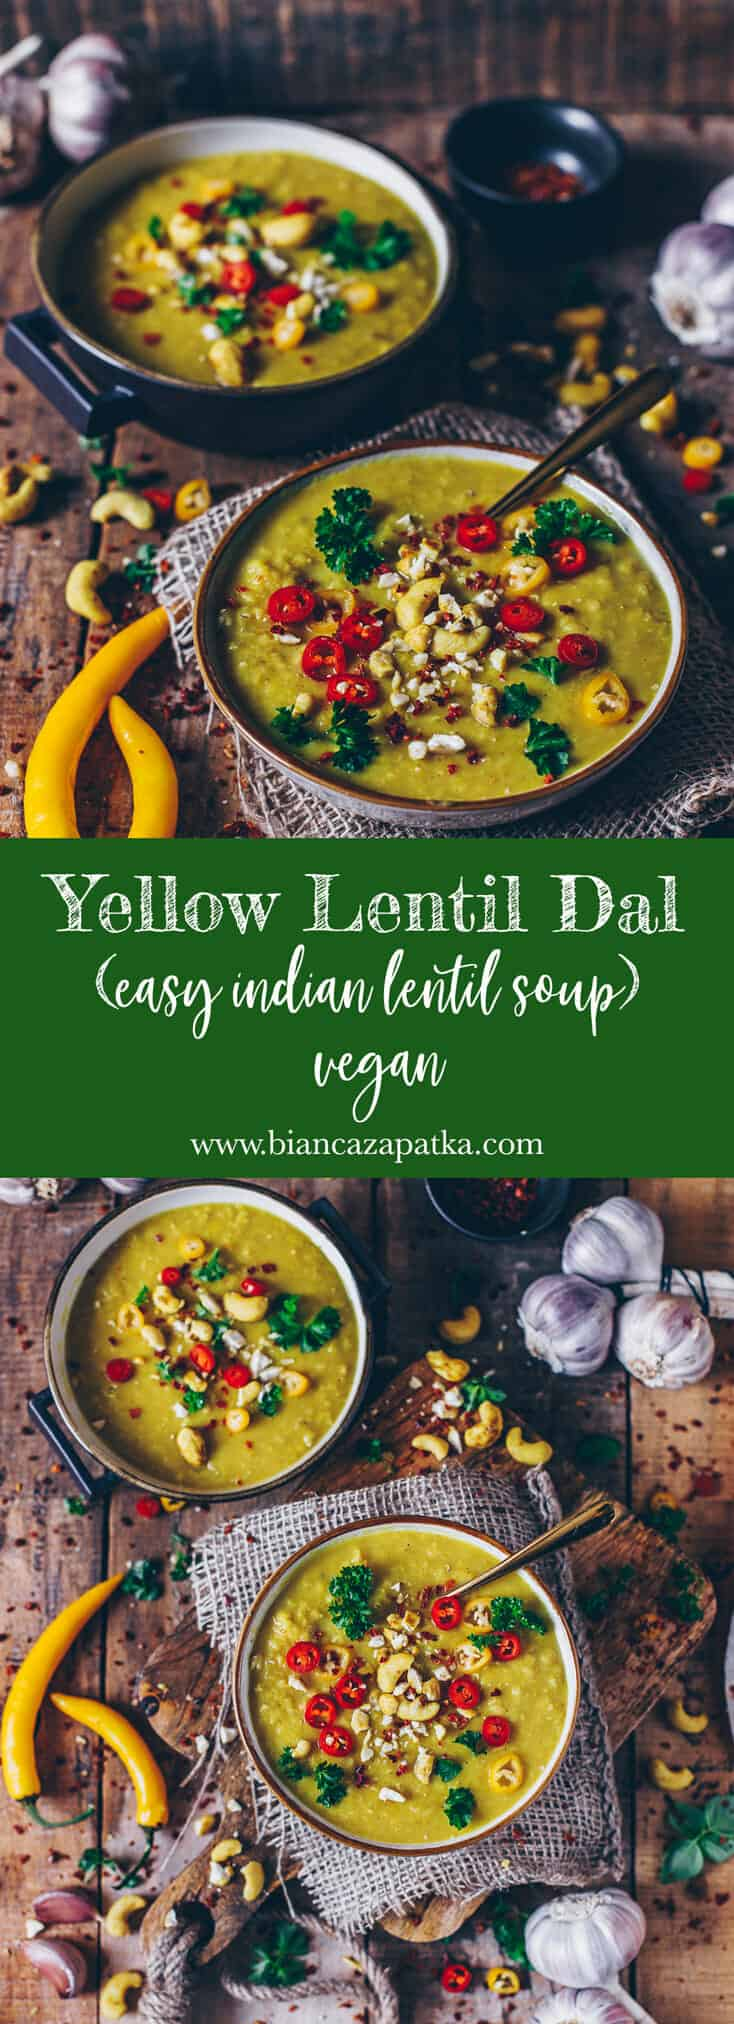 This recipe for a healthy and delicious dairy-free vegan yellow lentil dal with coconut milk is quick and easy to make and perfect to warm up!